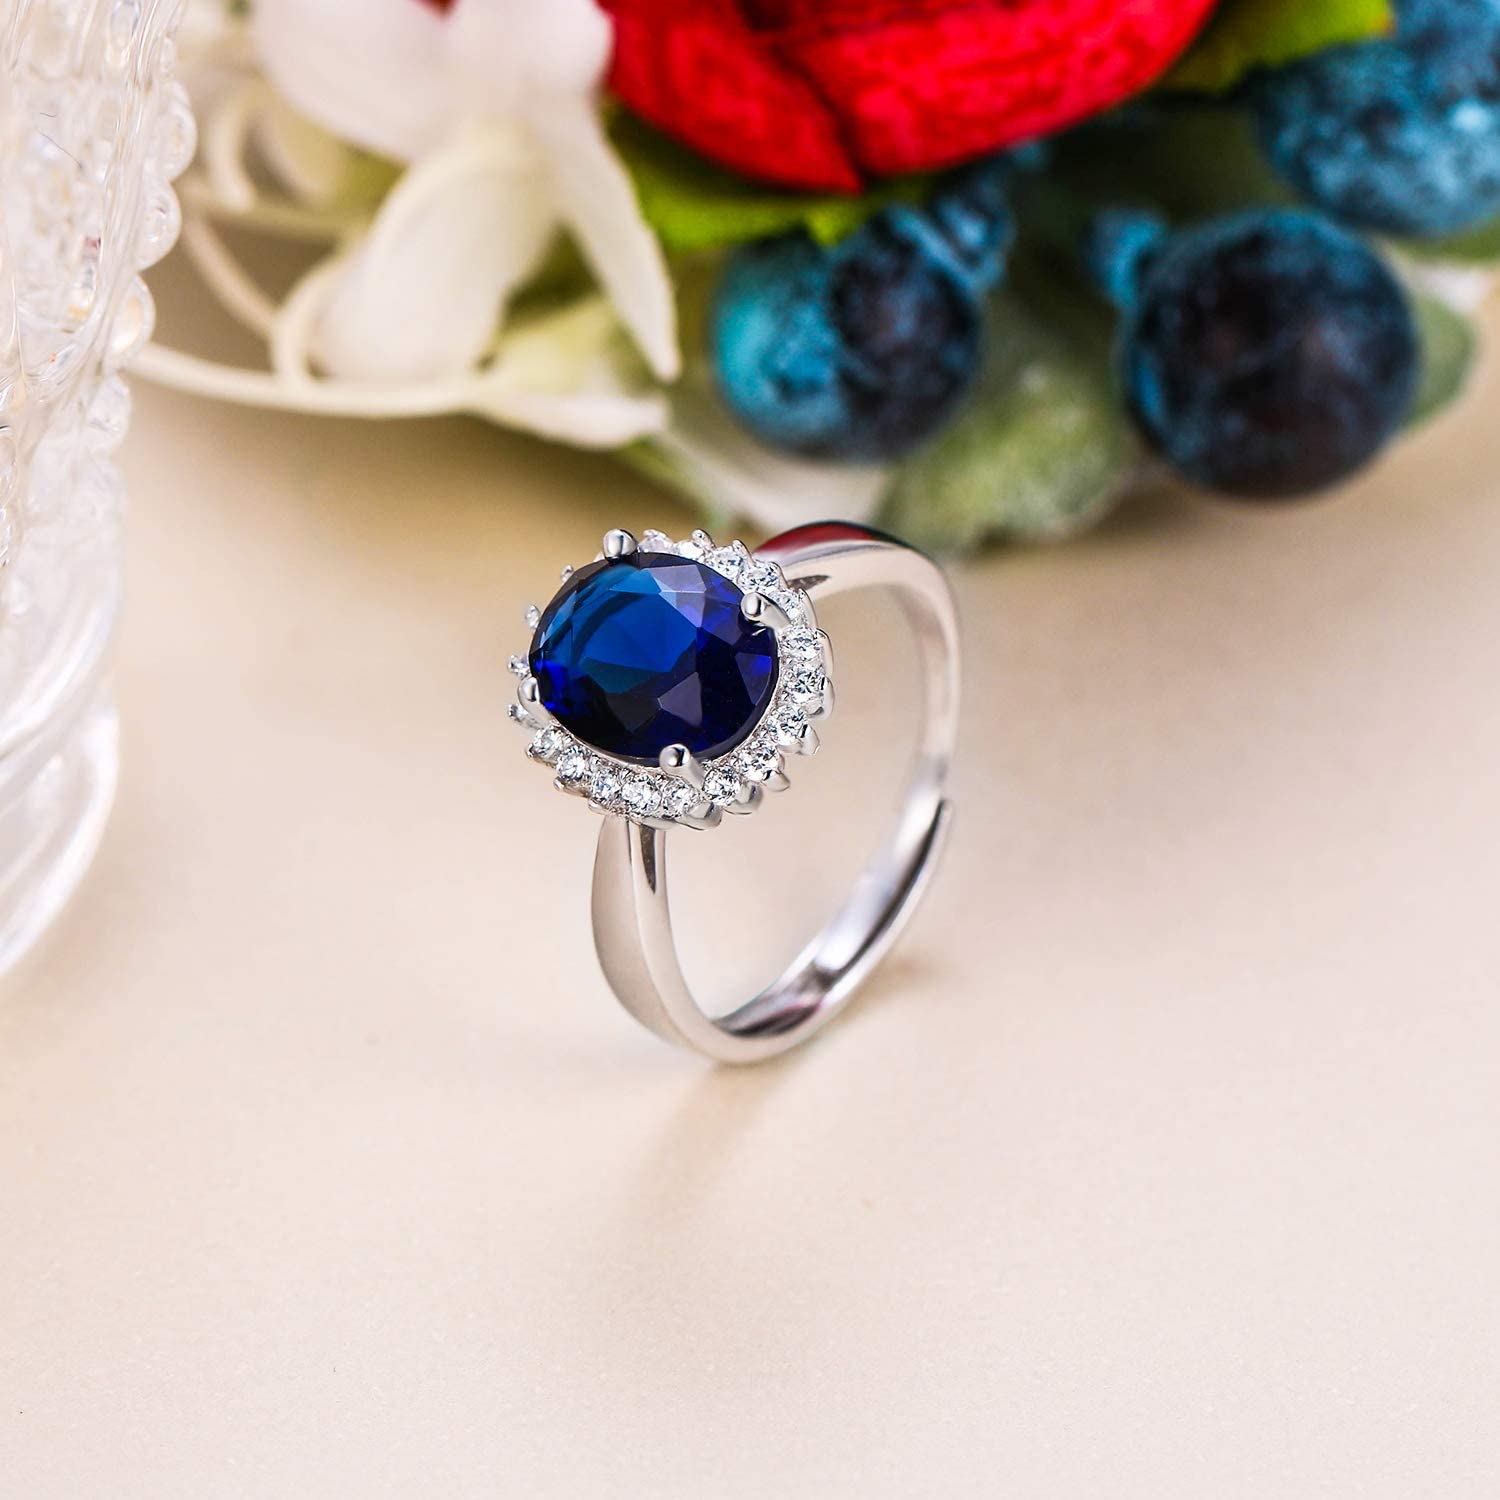 EVER FAITH Oval CZ Bridal Halo Engagement Adjustable Ring 925 Sterling Silver Sapphire Color for Women